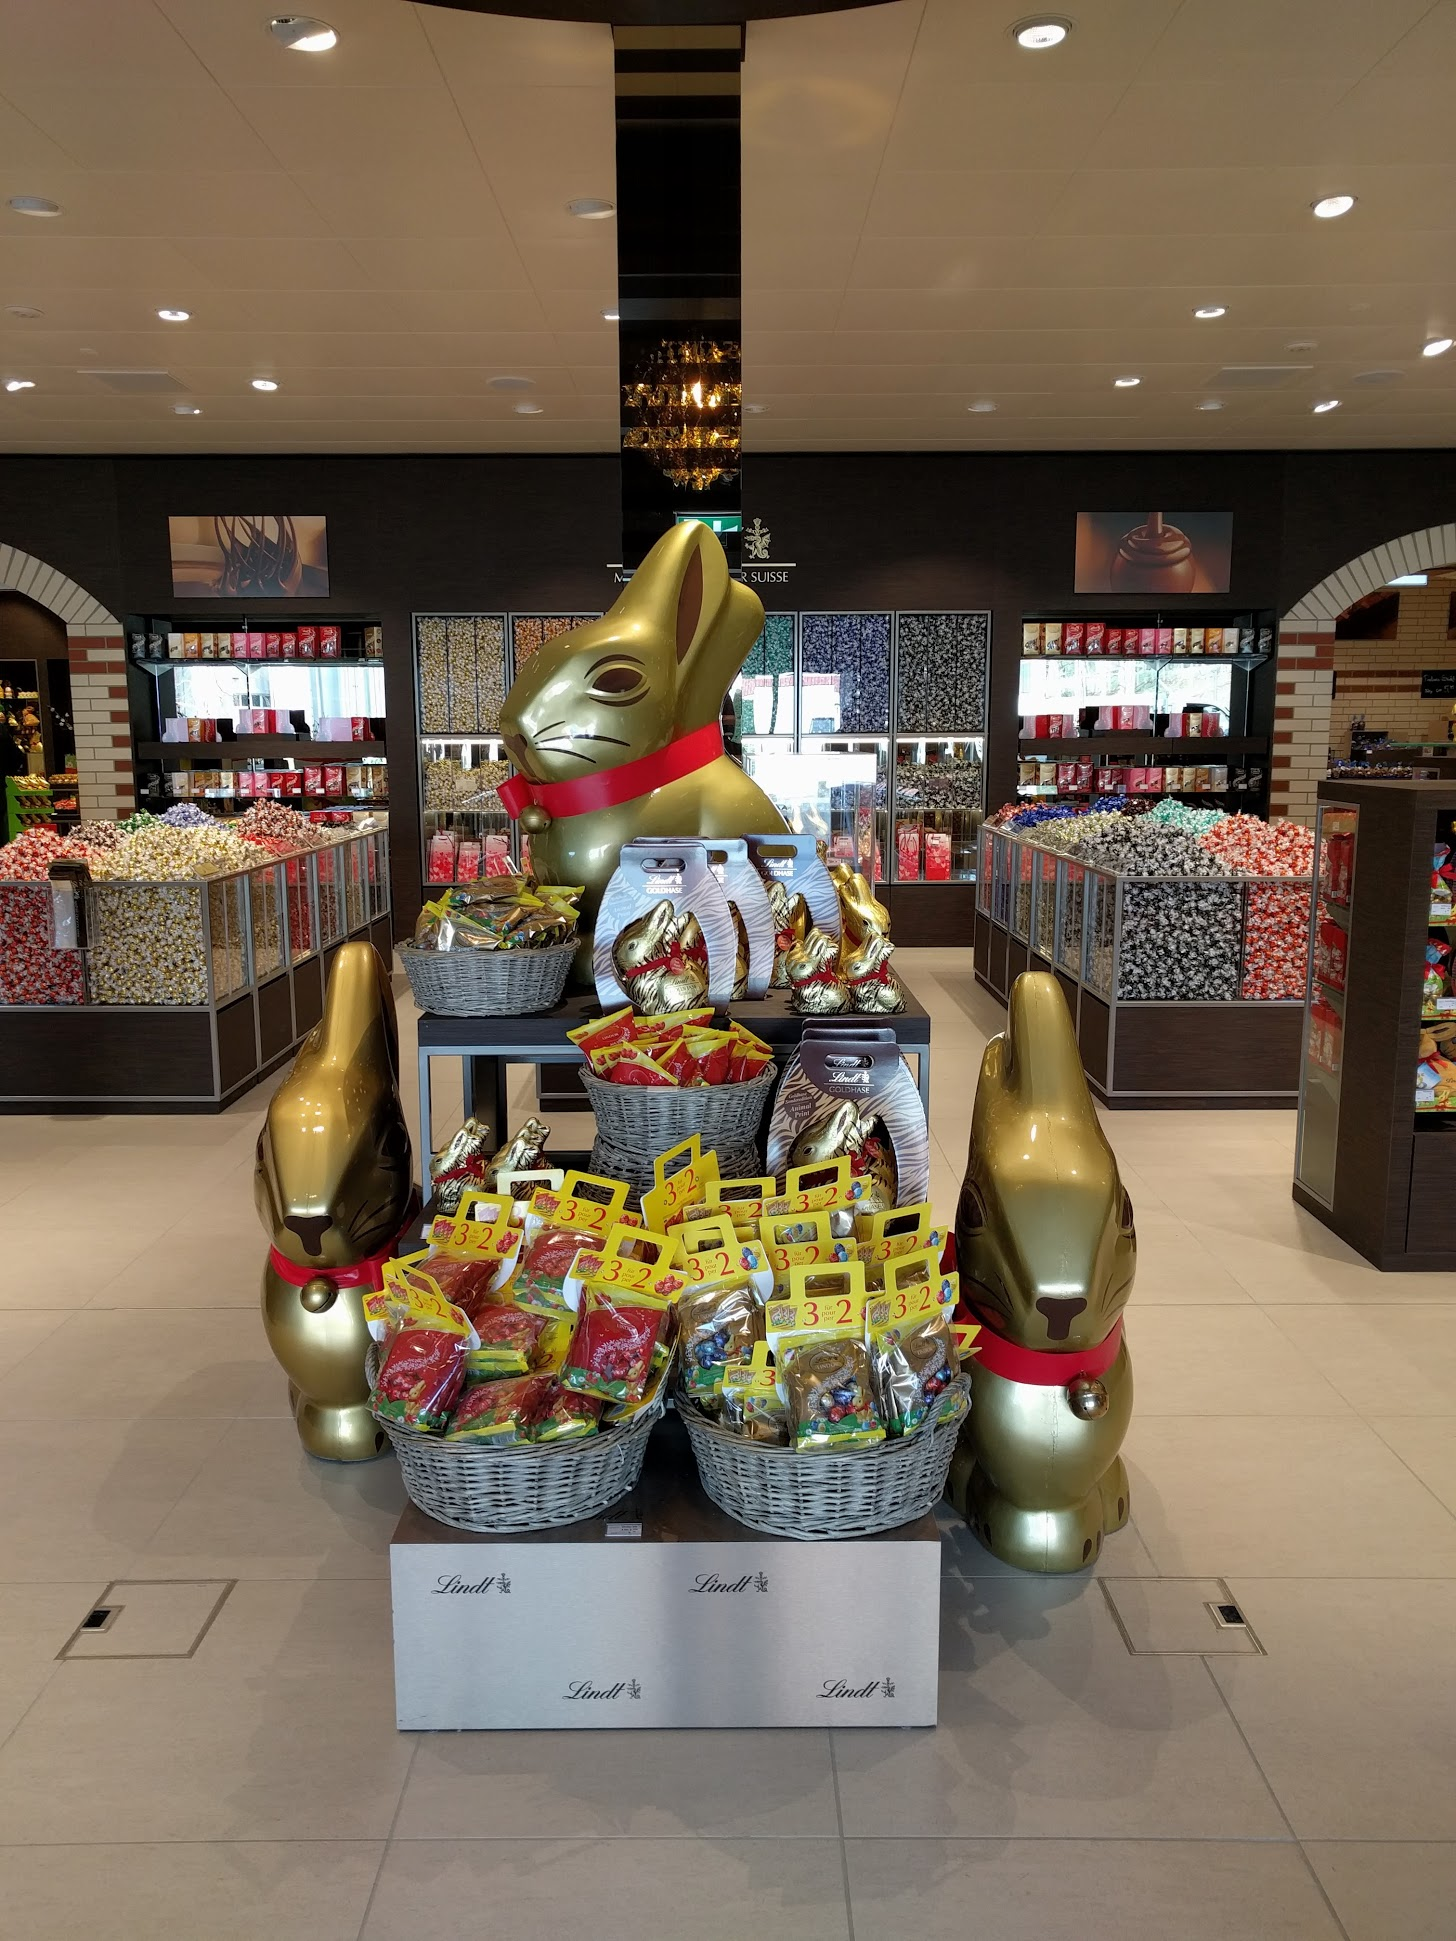 The new Lindt Chocolate Shop in Kilchberg